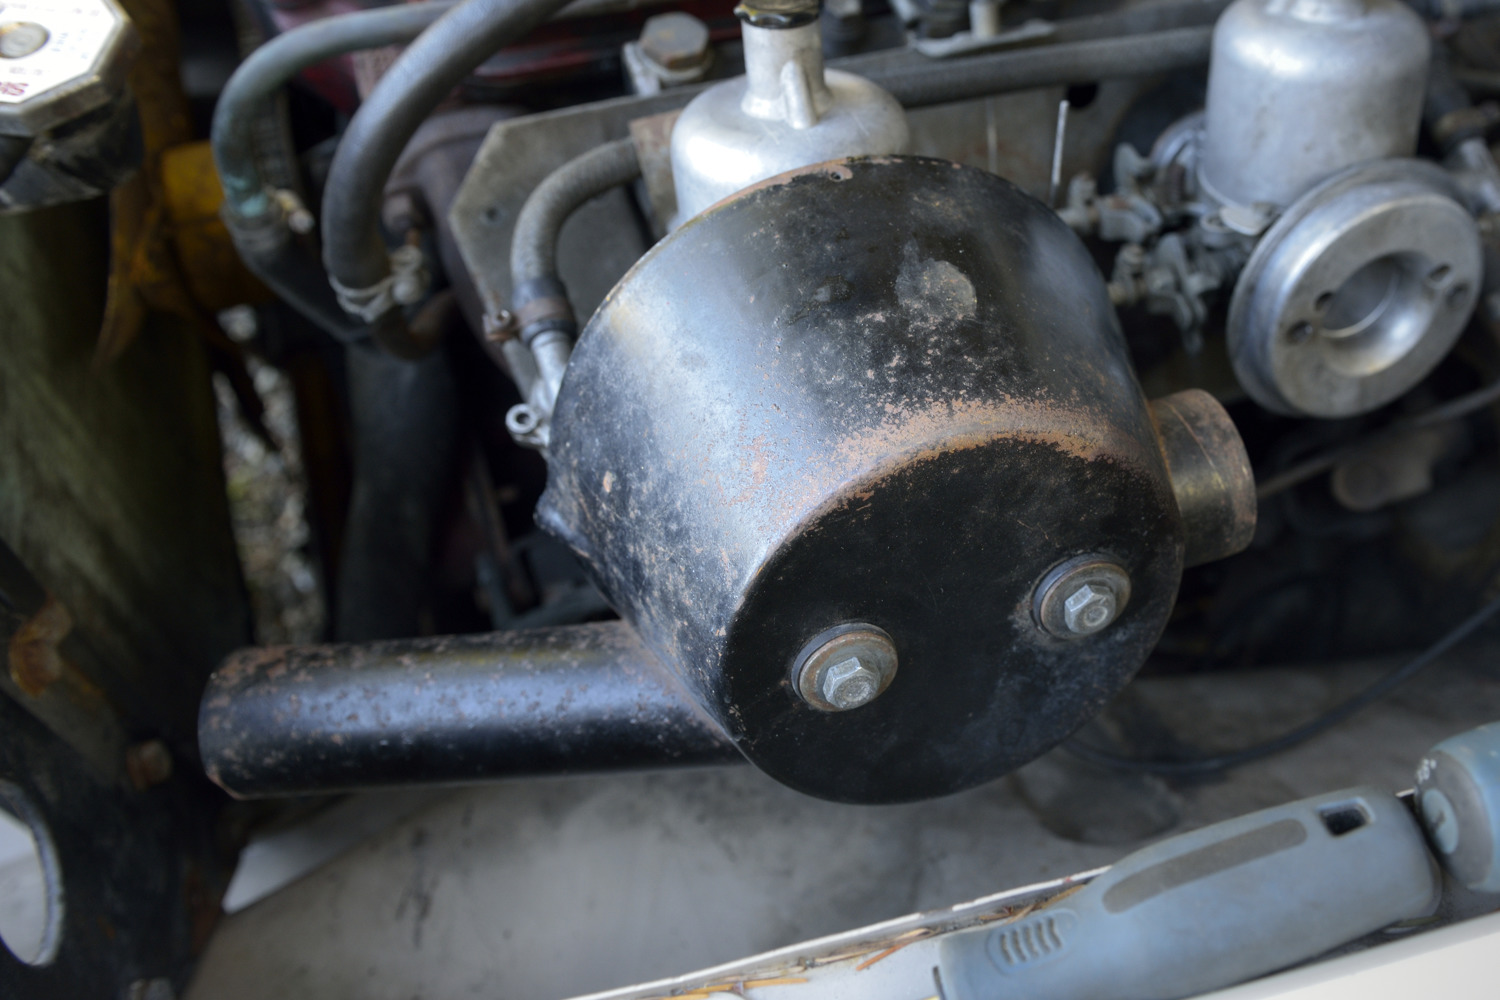 Ratty old Coopers can air filter housing before the repaint